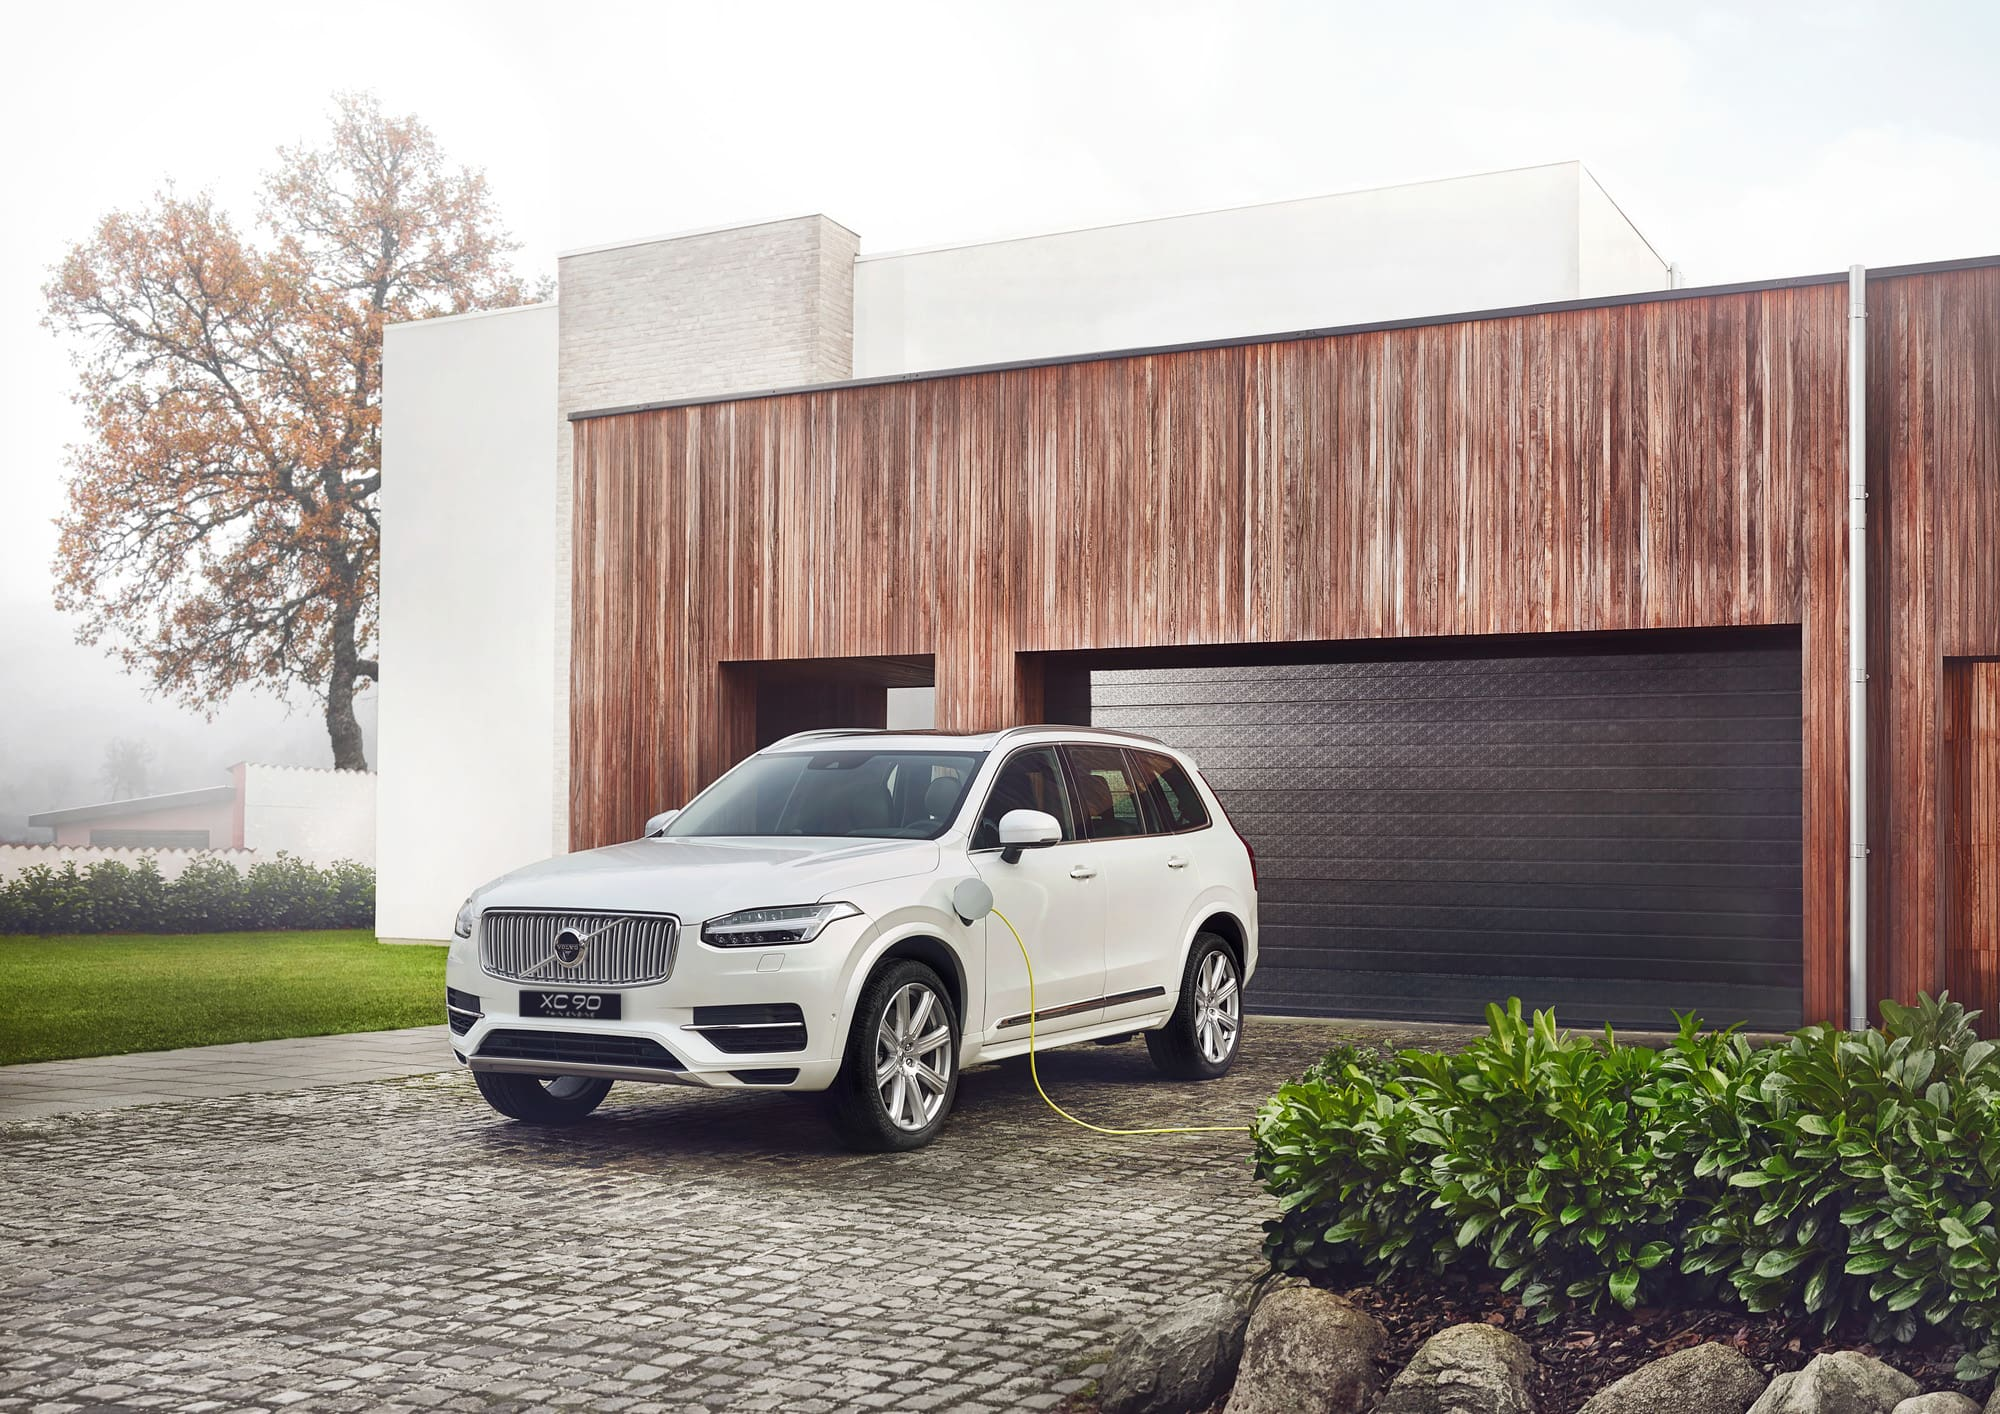 Auto Writers Group hails Volvo XC90 plug-in hybrid as Mid-Size Luxury SUV of Texas